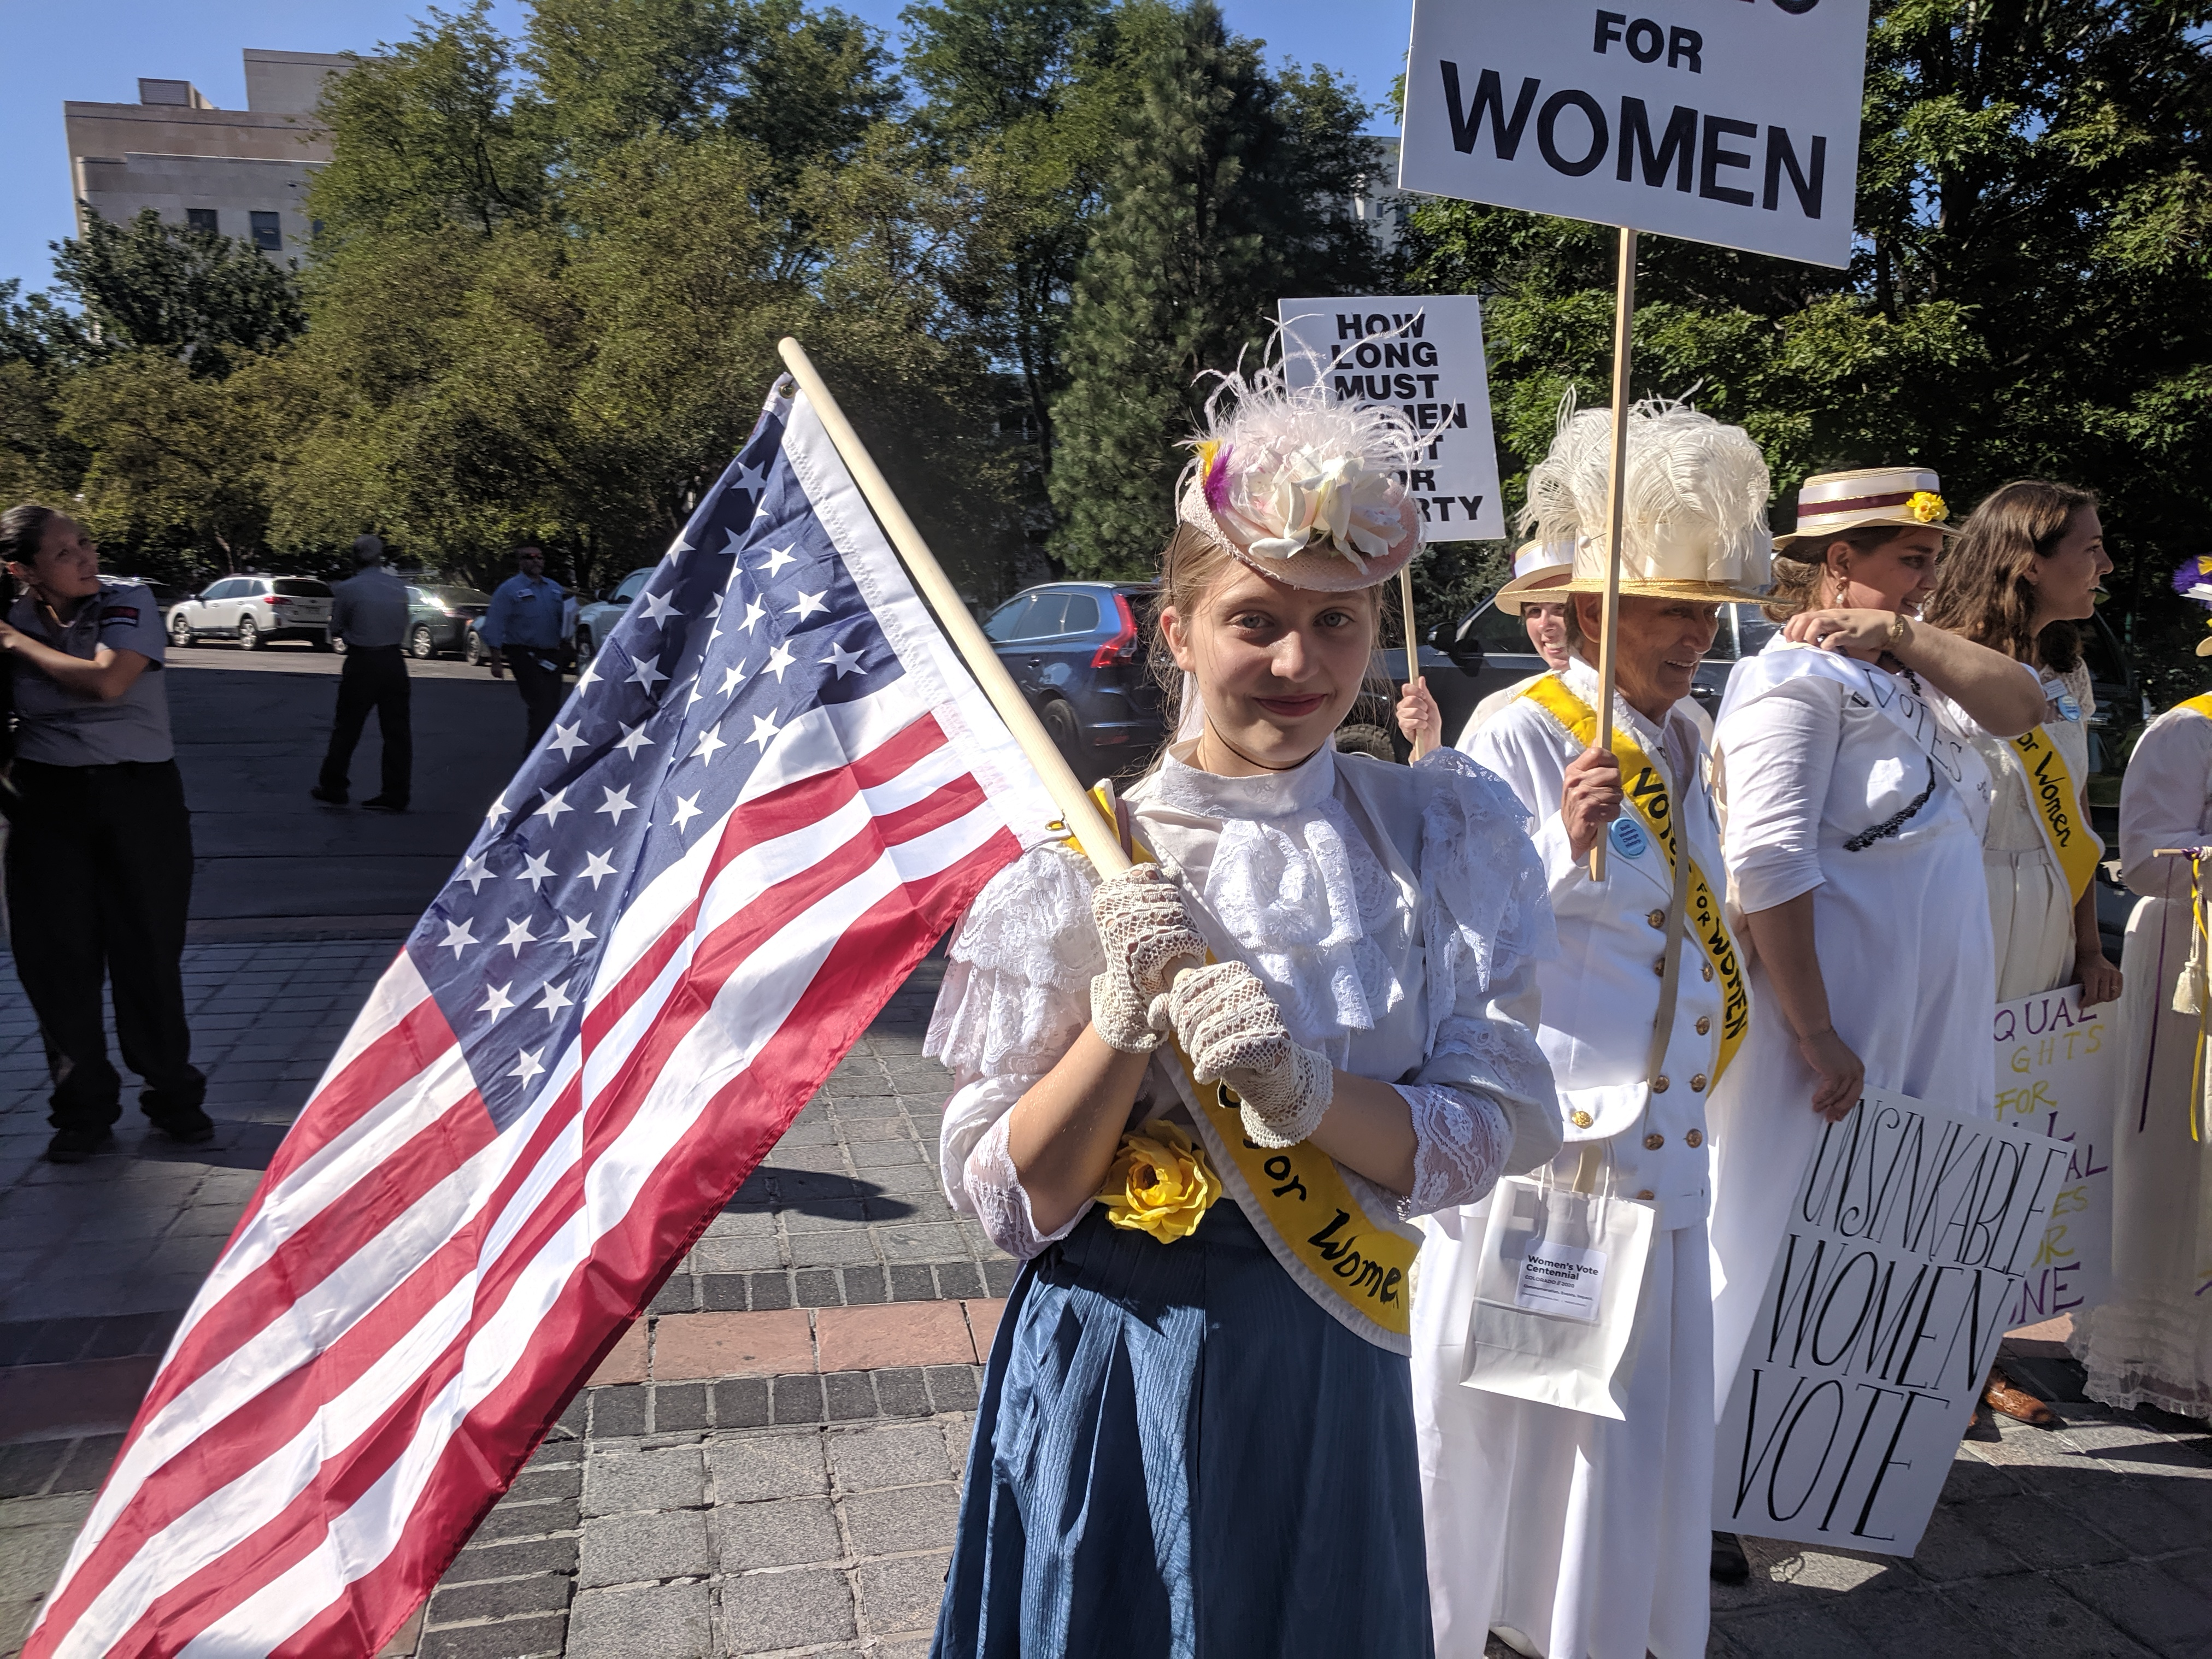 16-year-old Emma Davis dressed like an original Suffragist to celebrate the 99th anniversary of the ratification of the 19th Amendment on August 26, 2019.